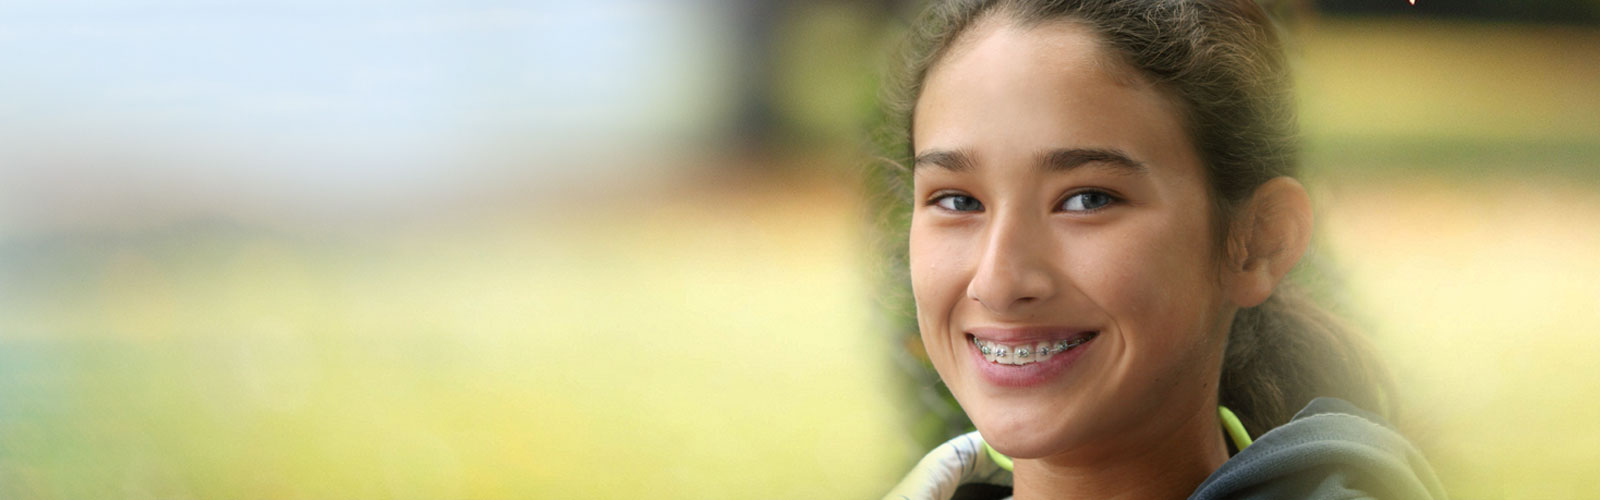 Redwood City Braces Treatment